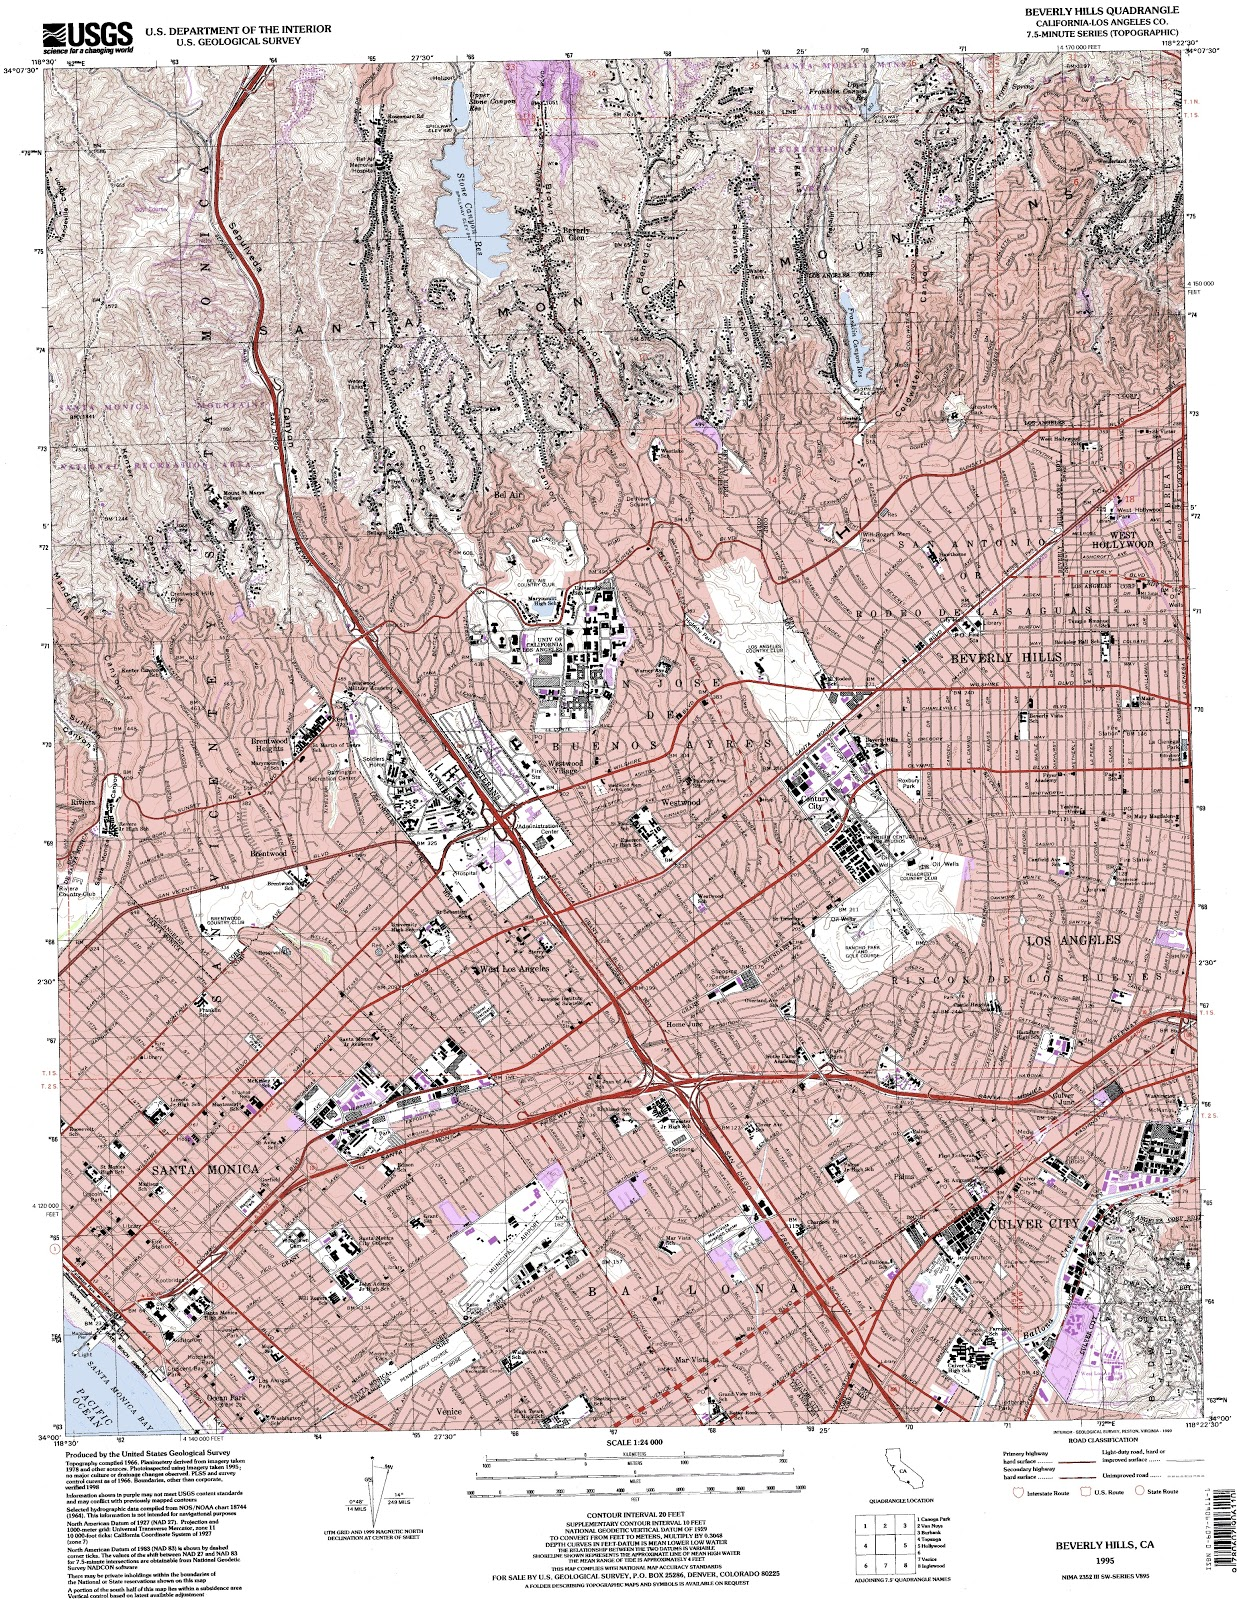 the following list is comprised of the answers in reference to this topographical map